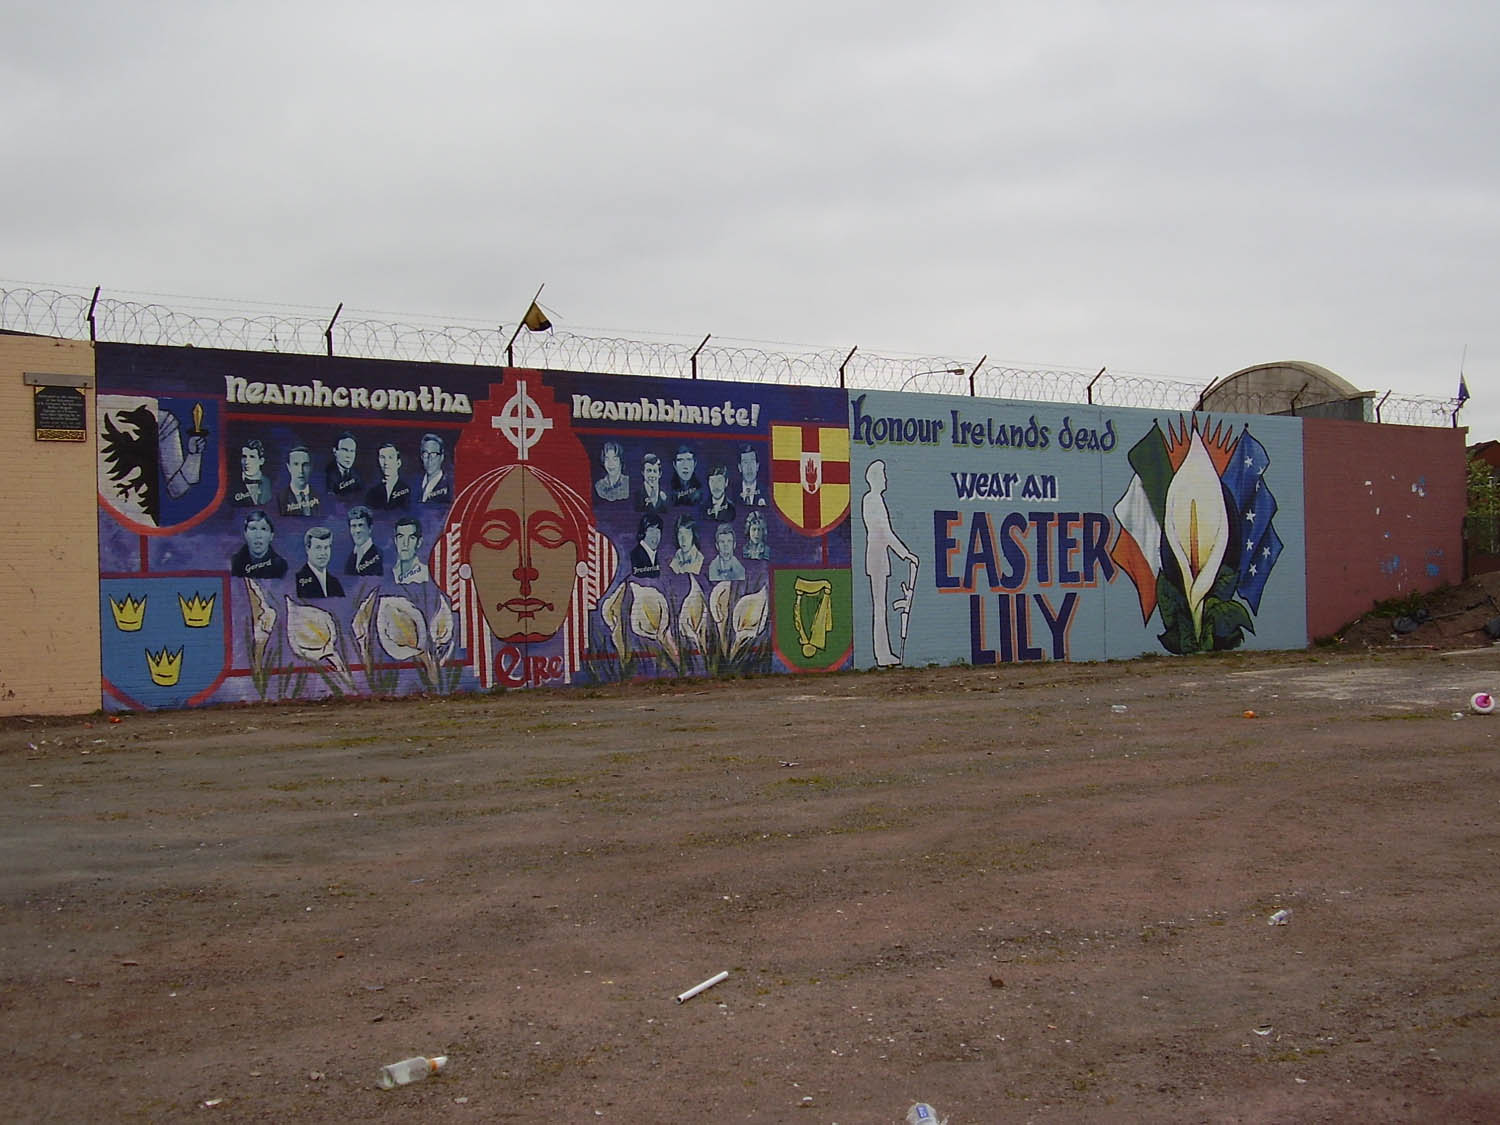 http://cain.ulst.ac.uk/viggiani/images/MURALS/Belfast/Republicans/Eire+Easter%20Lily%20-%20Mountpottinger%20Road,%202006.JPG